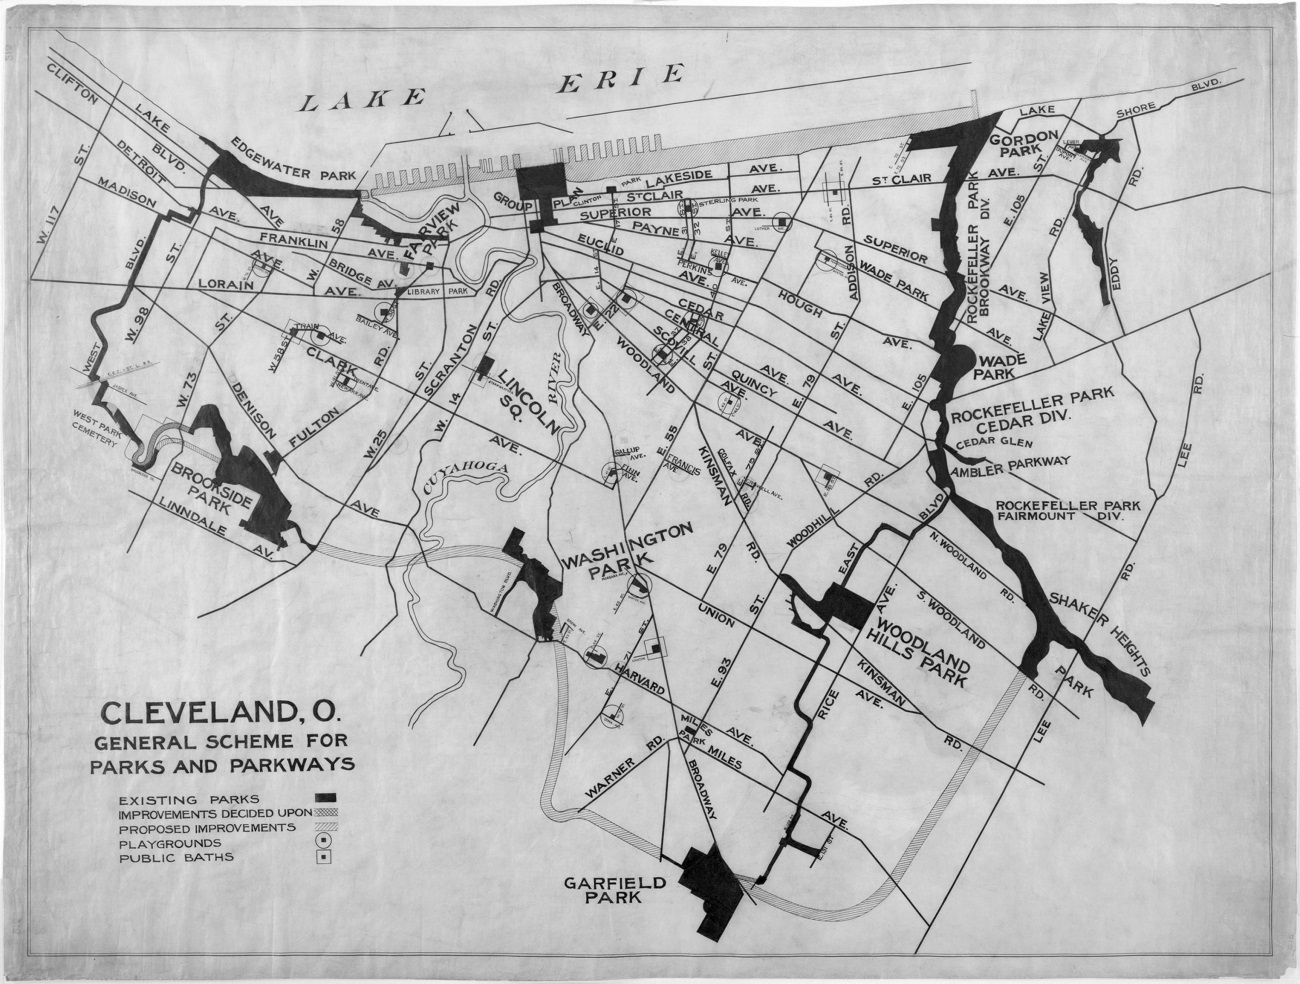 General Scheme for Parks and Parkways, 1890-1910. The bolded lines and areas on this map indicate proposed pathways between major parks around Cleveland.